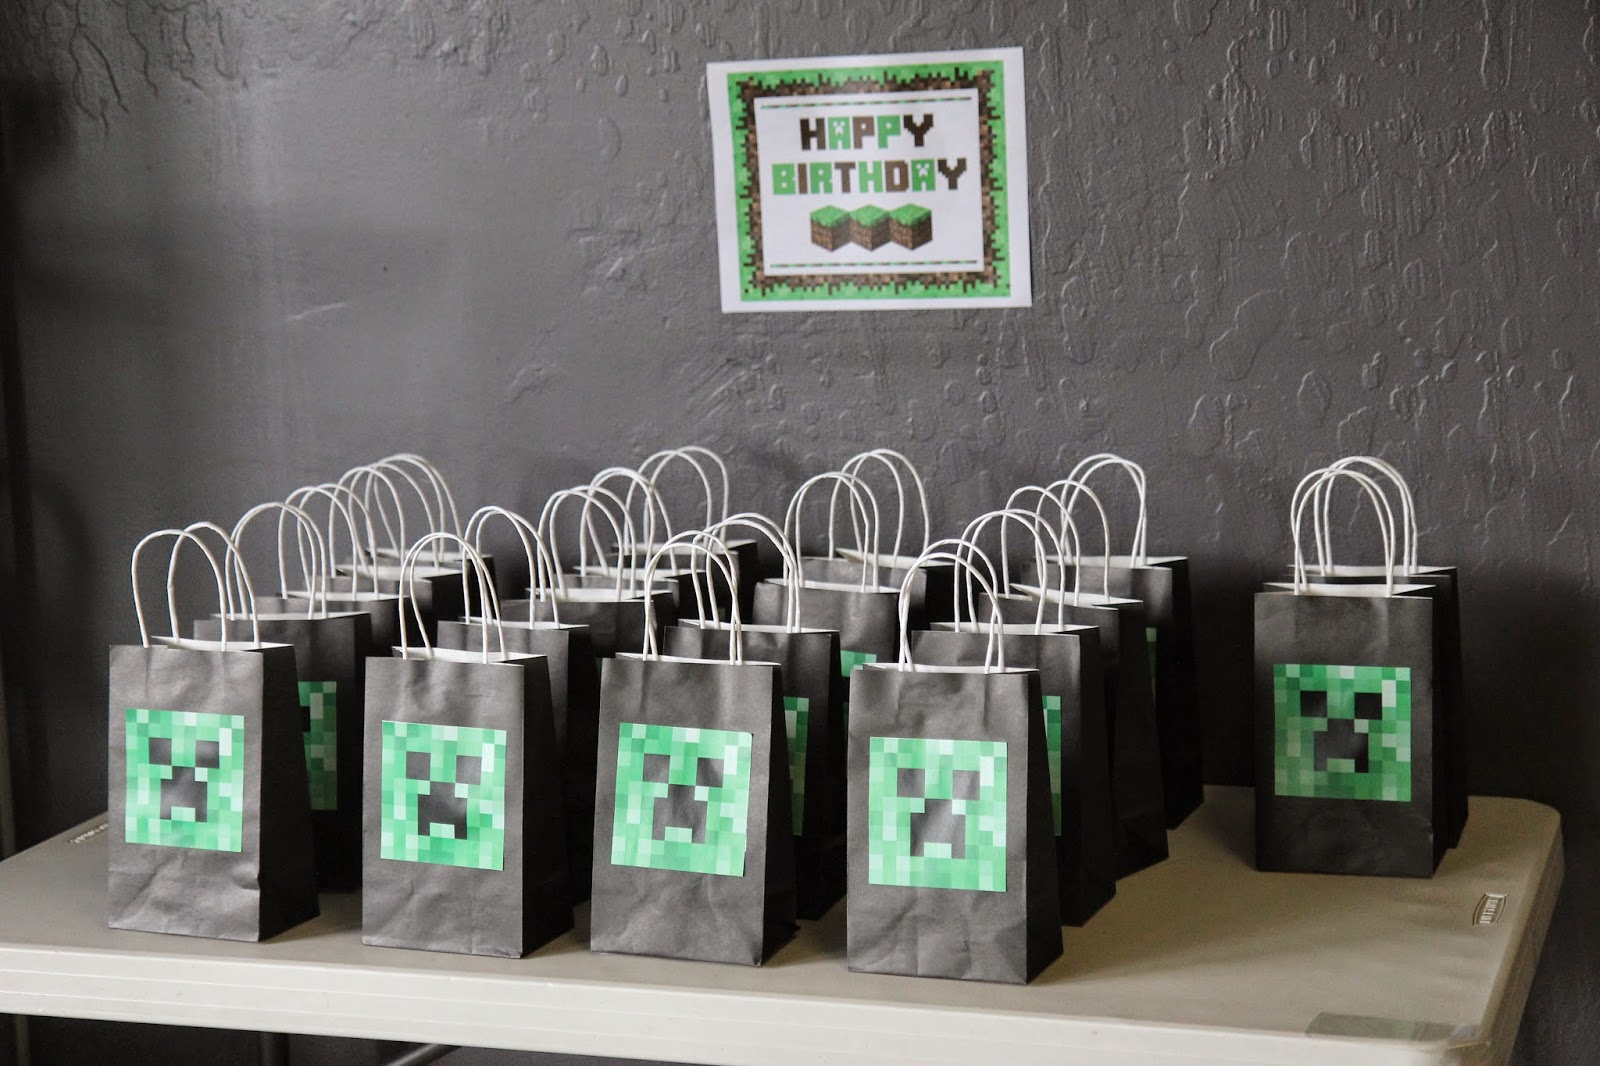 Minecraft Party Decorations The Kk Report Andrews Minecraft Lego Birthday Party